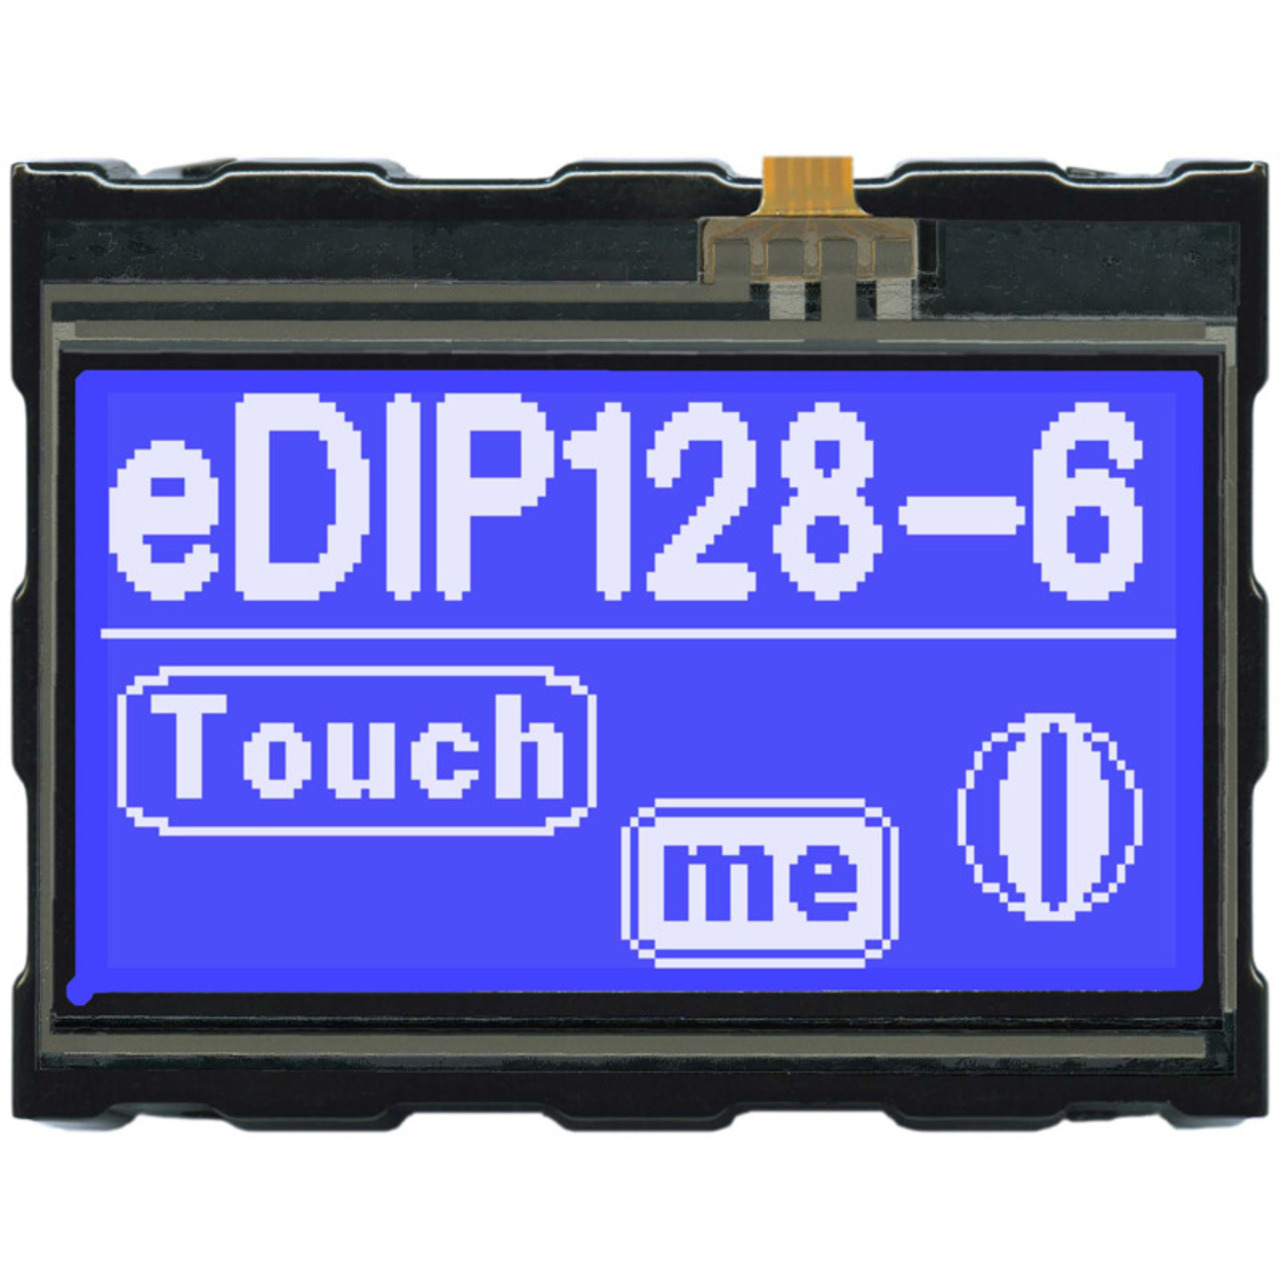 Electronic Assembly LCD-Bedieneinheit mit Touch EA eDIP128B-6LWTP 128x64 Pixel